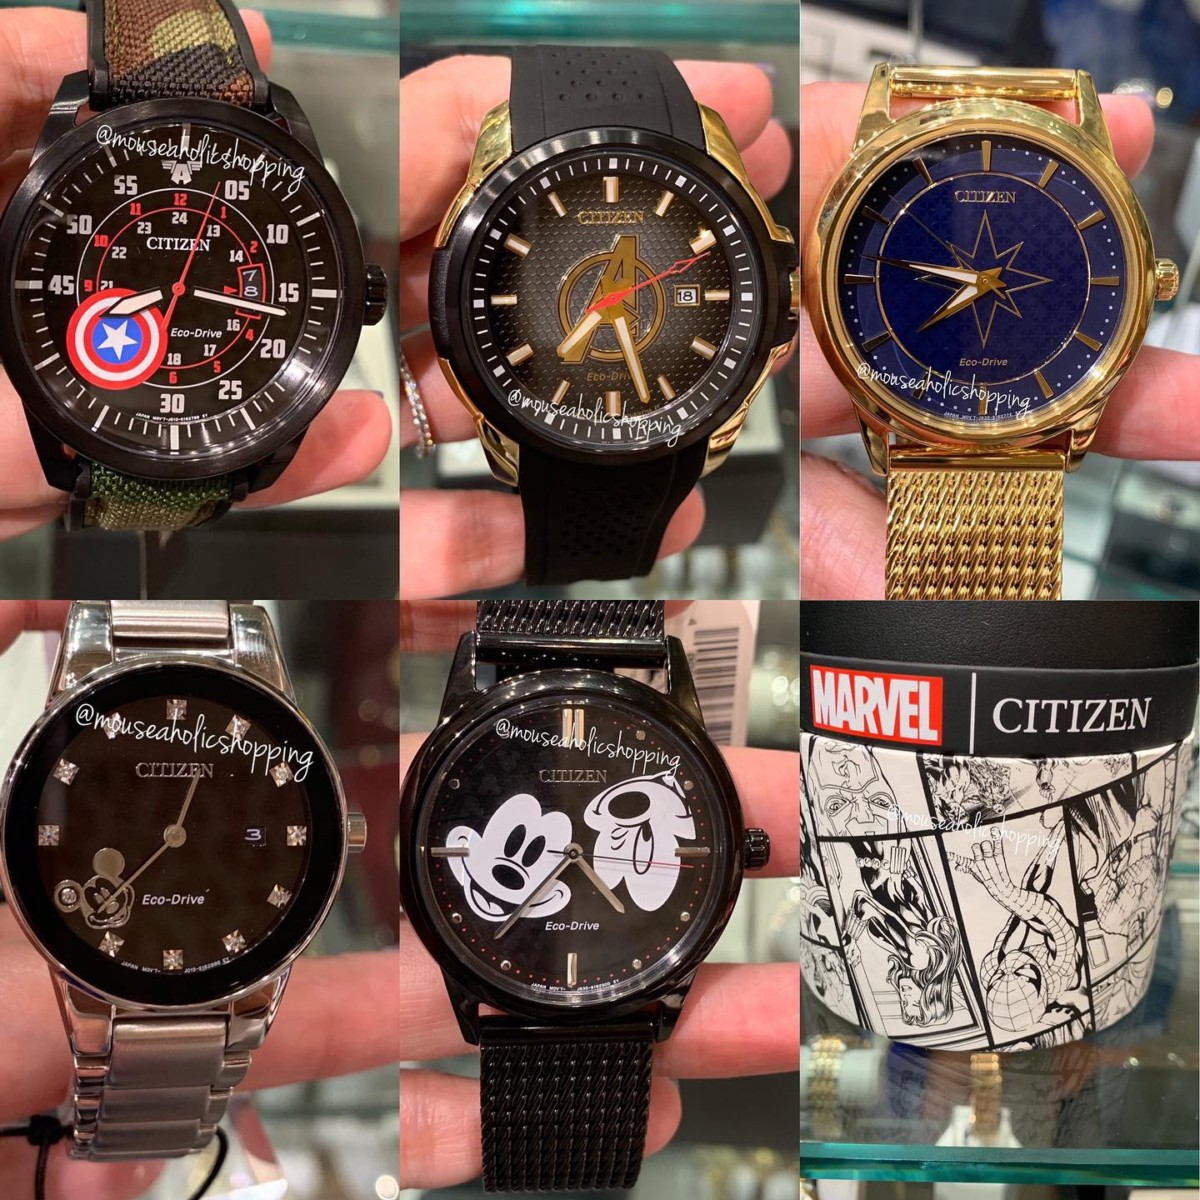 These new watches are infused with Marvel super powers and our favorite Mickey Mouse 6